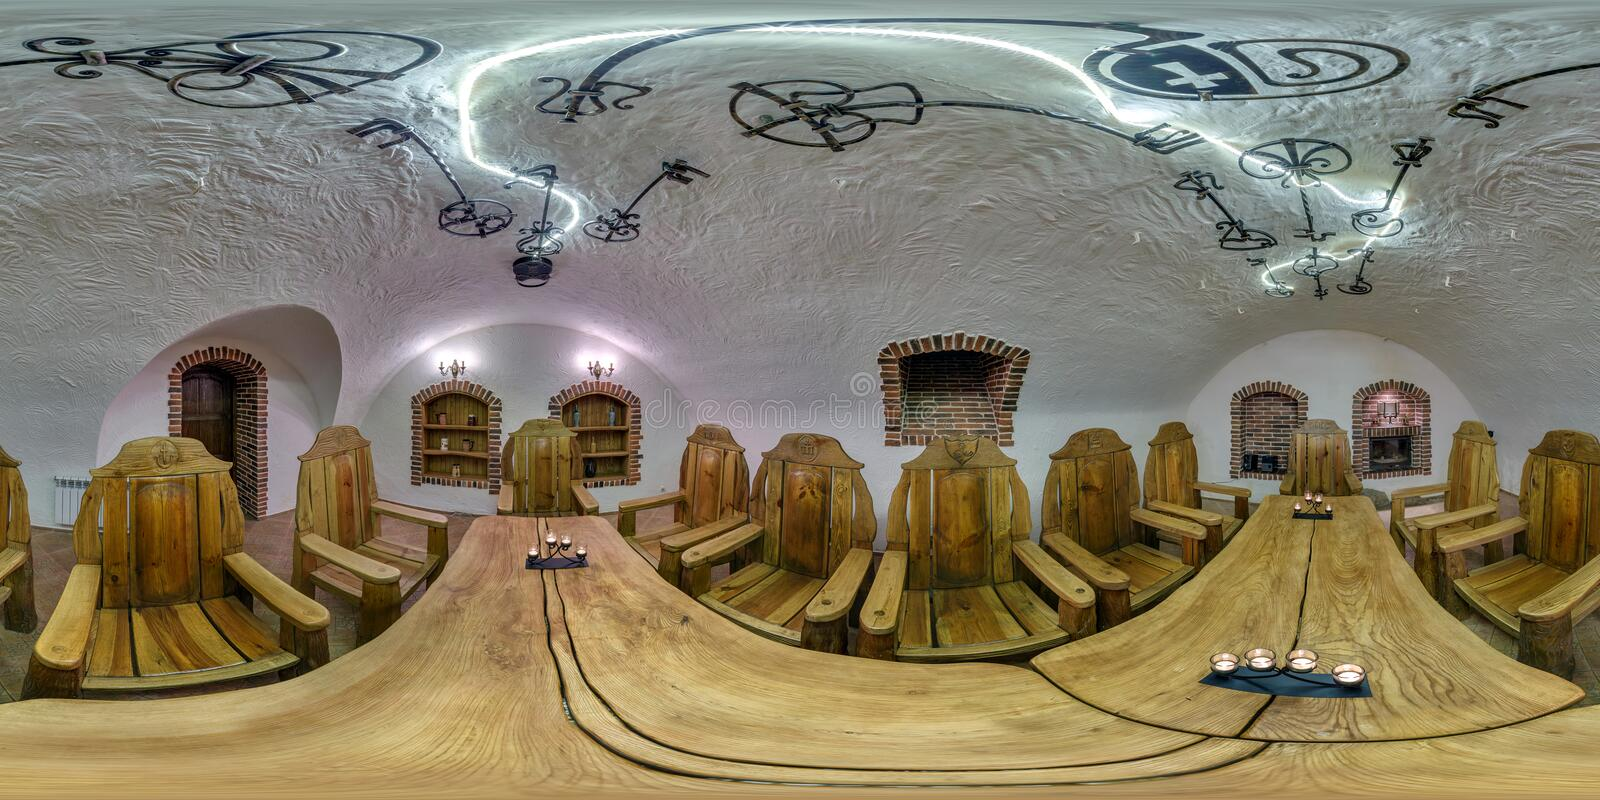 GRODNO, BELARUS - NOVEMBER 22, 2013: Full spherical 360 by 180 degrees seamless panorama in equirectangular equidistant projection. Panorama in interior royalty free stock photography